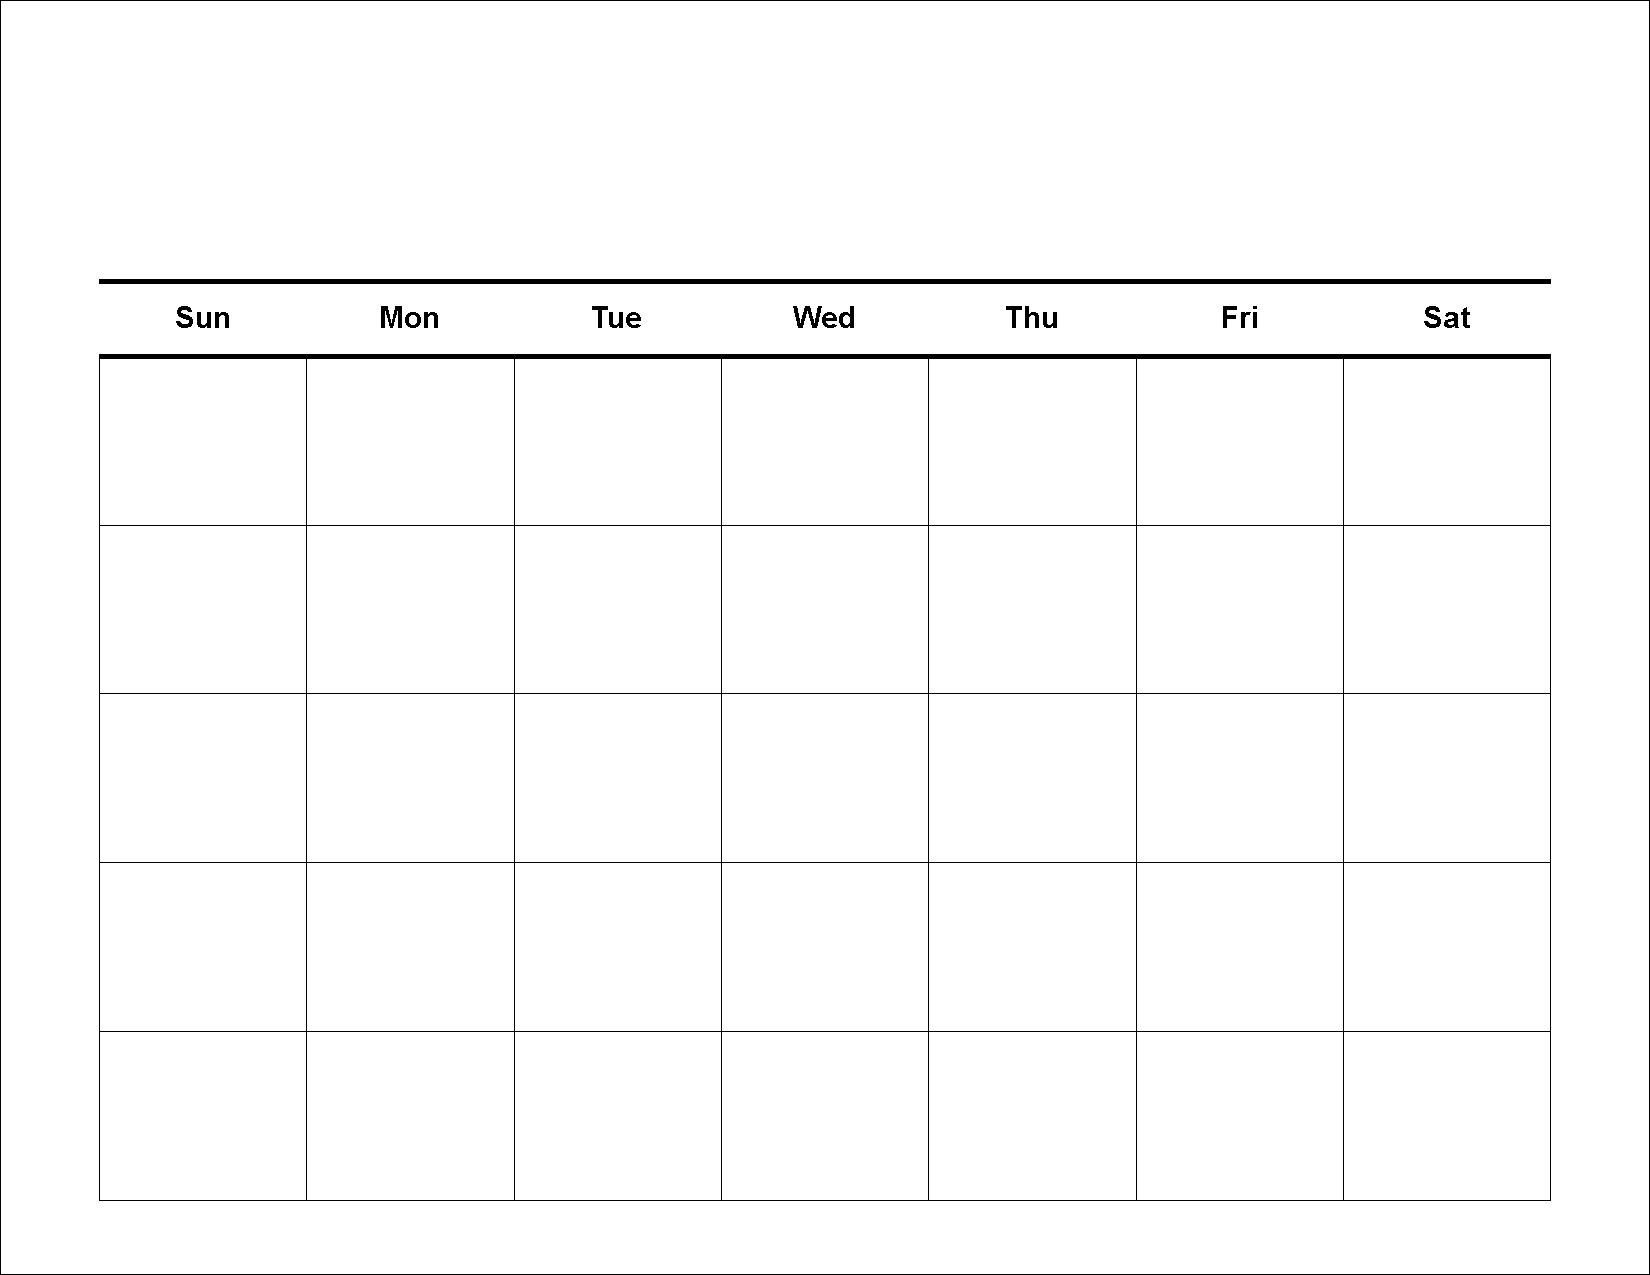 Printable Calendar Grid Leonescapersco Free 2 Week Blank pertaining to Blank Calendars With Days Of The Week Not Numbered